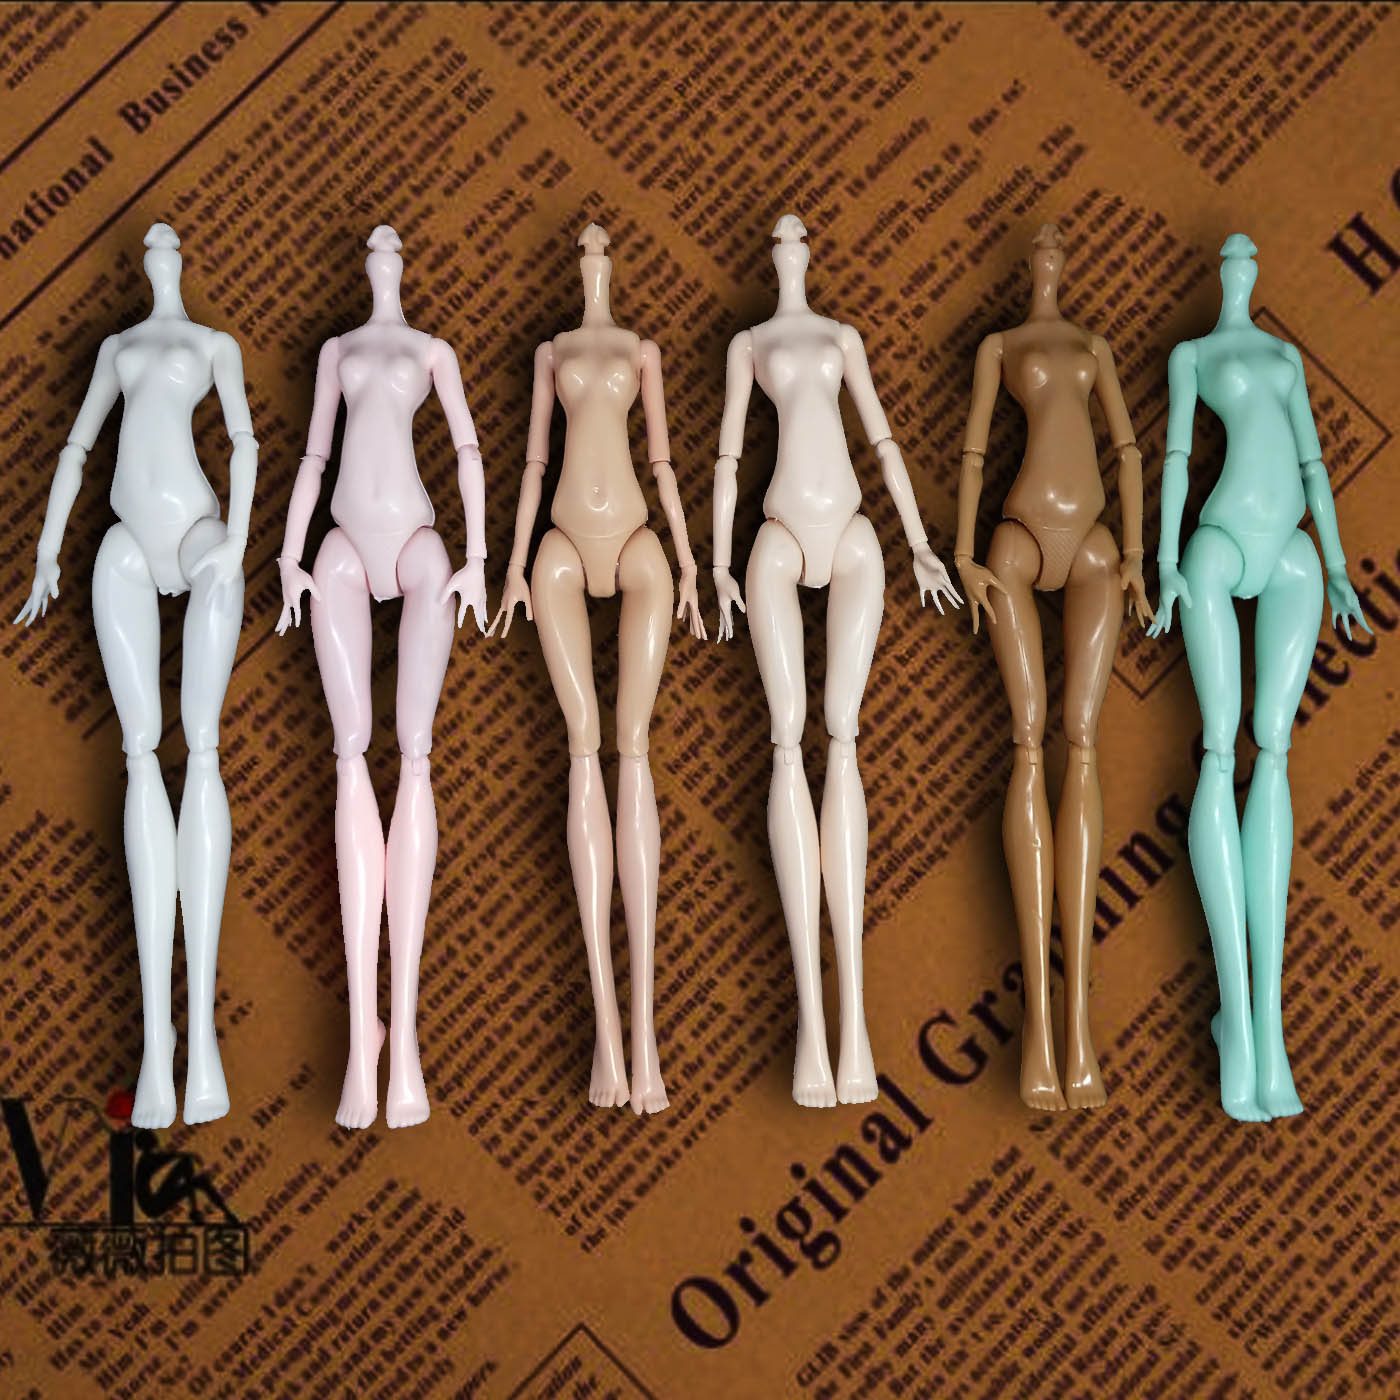 High Quality Imitation Demon Monster Dolls Naken Kropp Uten Hodet Til Monster Høye Dukker DIY Fairytales Roterable Joints Doll